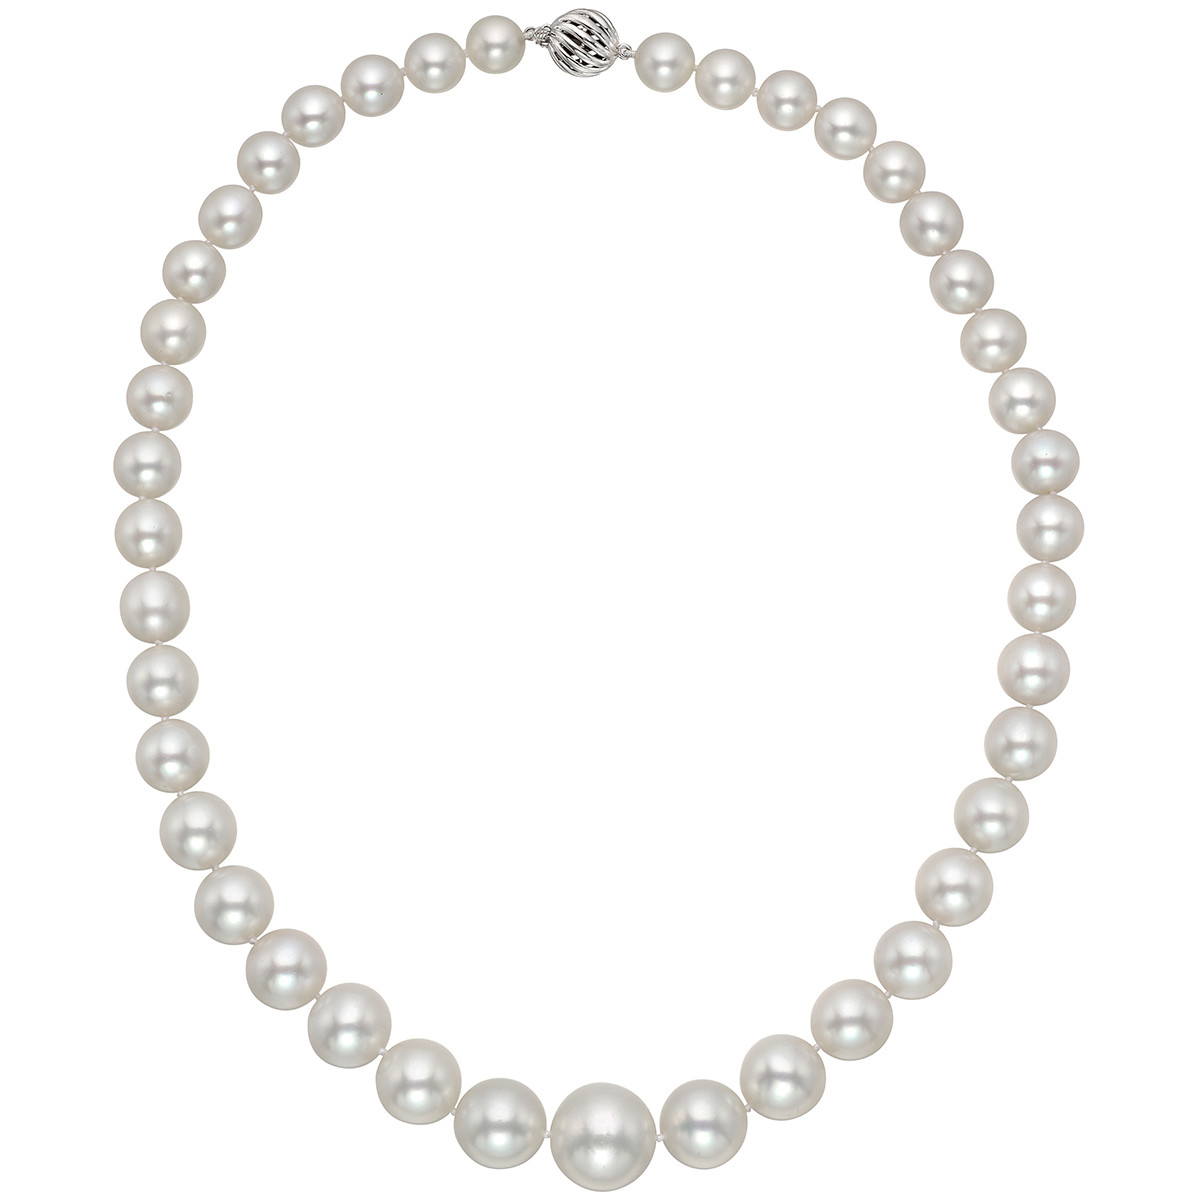 South Sea Pearl Necklace with 18k White Gold Clasp